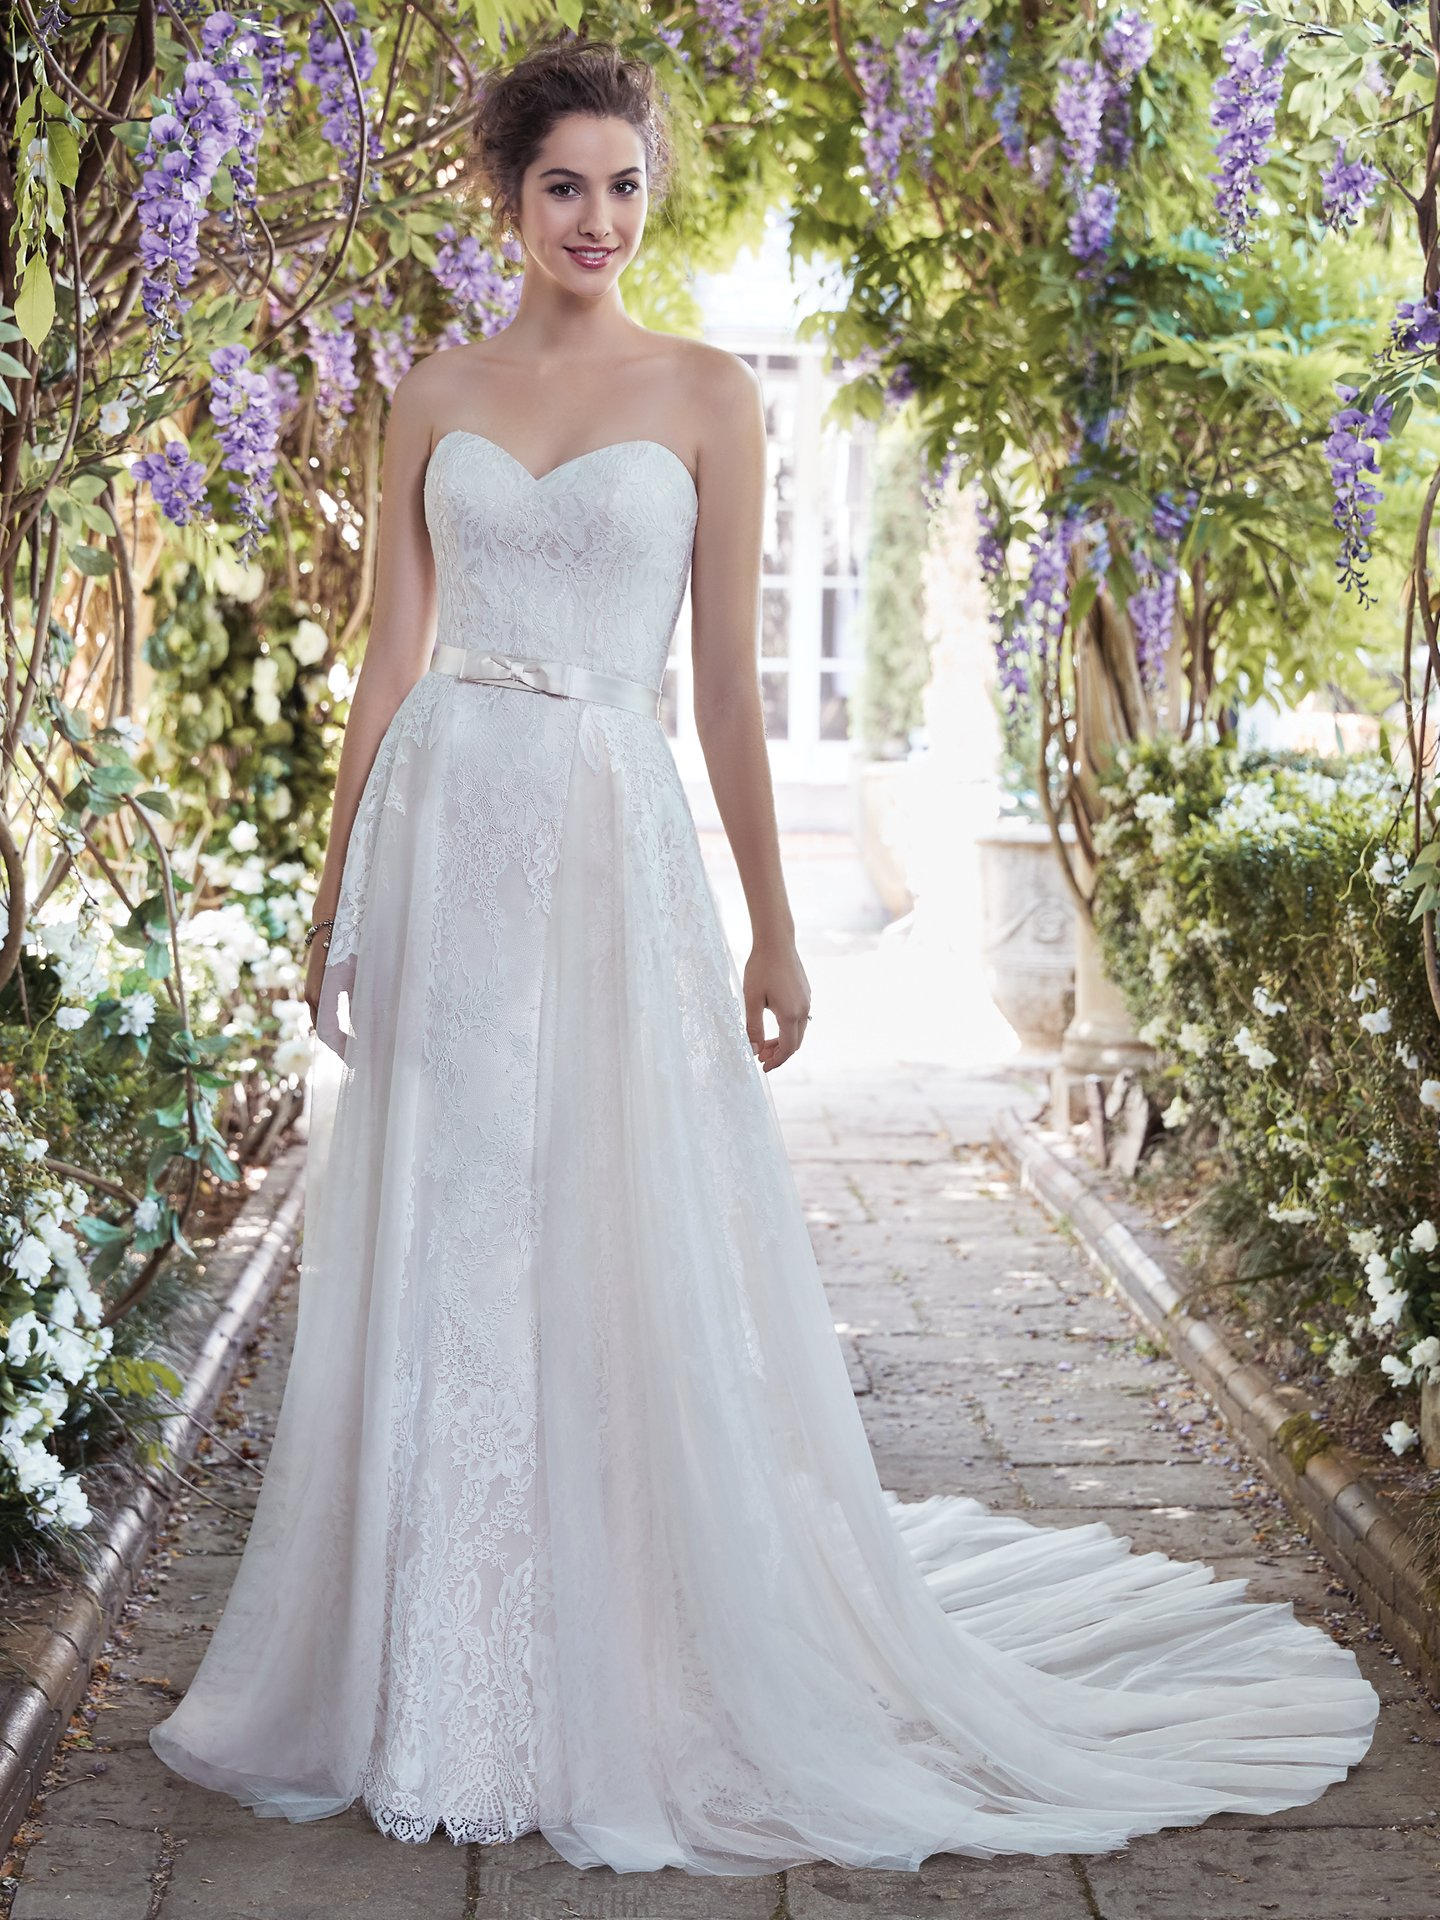 The Latest Wedding Dress Trends for Engagement Season 2018 : Love ...